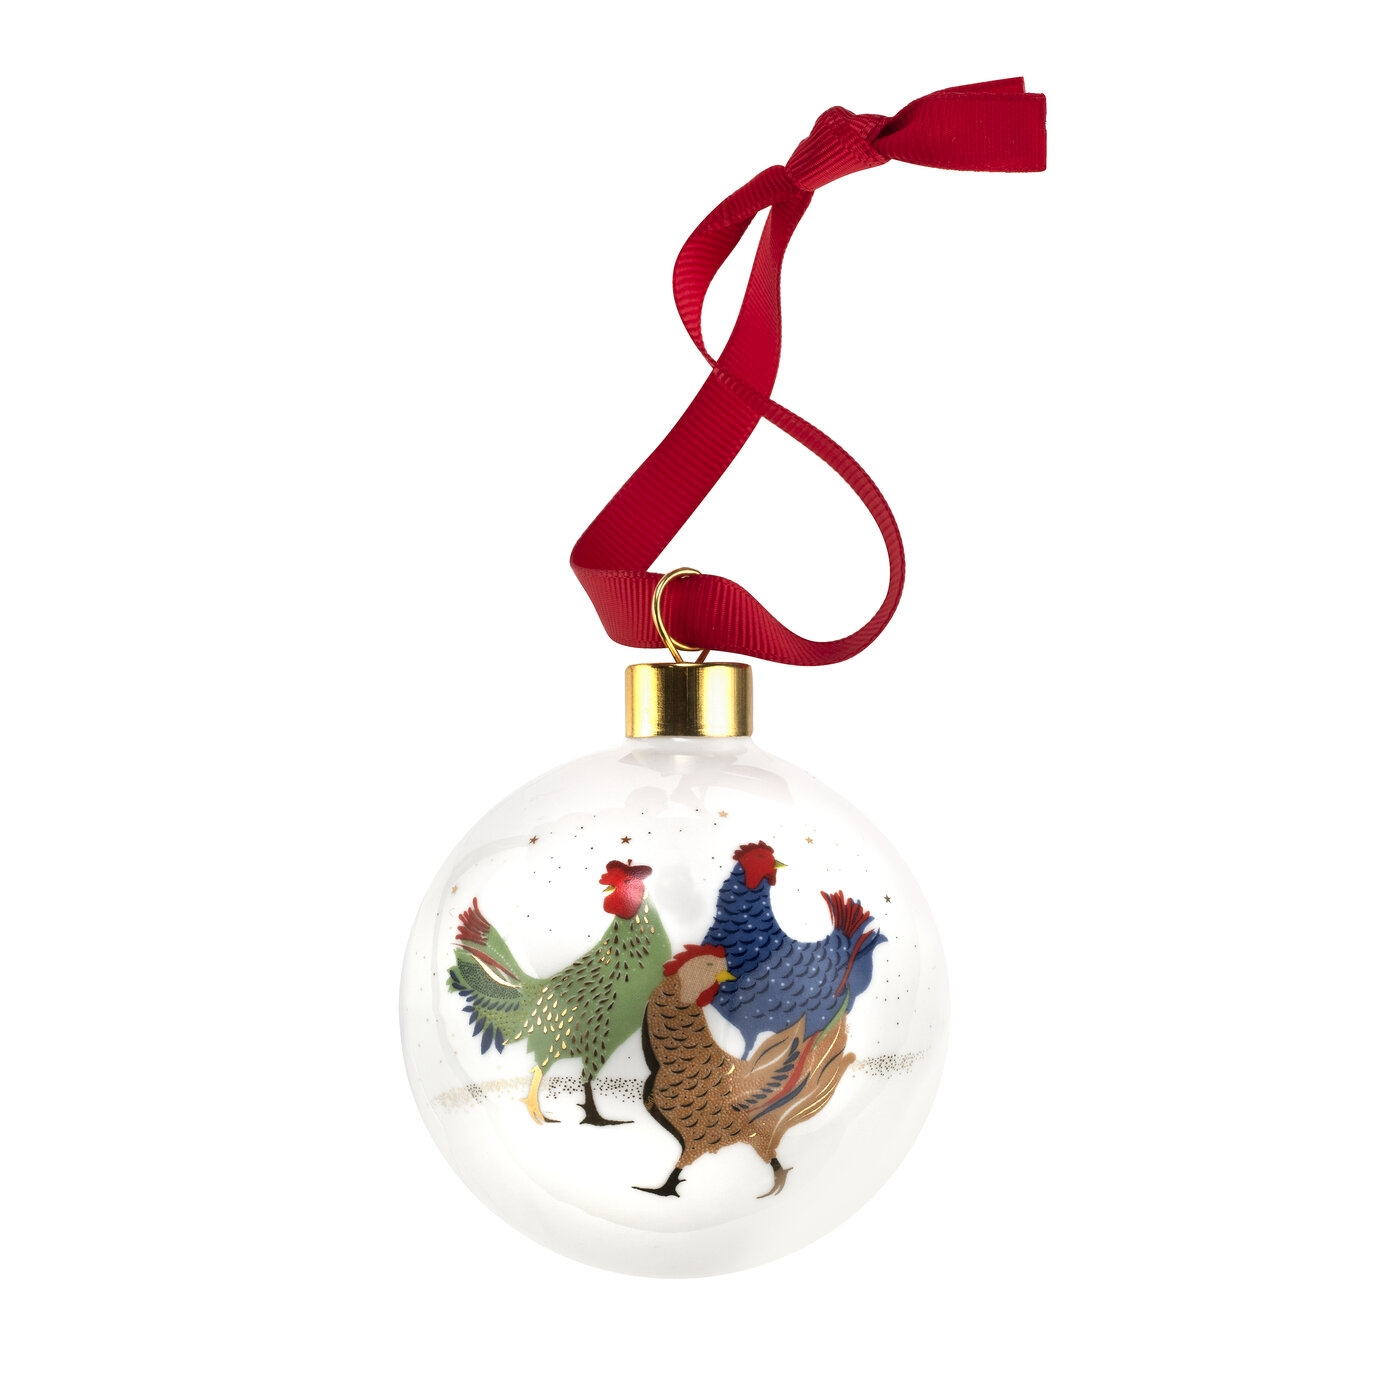 Sara Miller London for Portmeirion Three French Hens Bauble image number 0